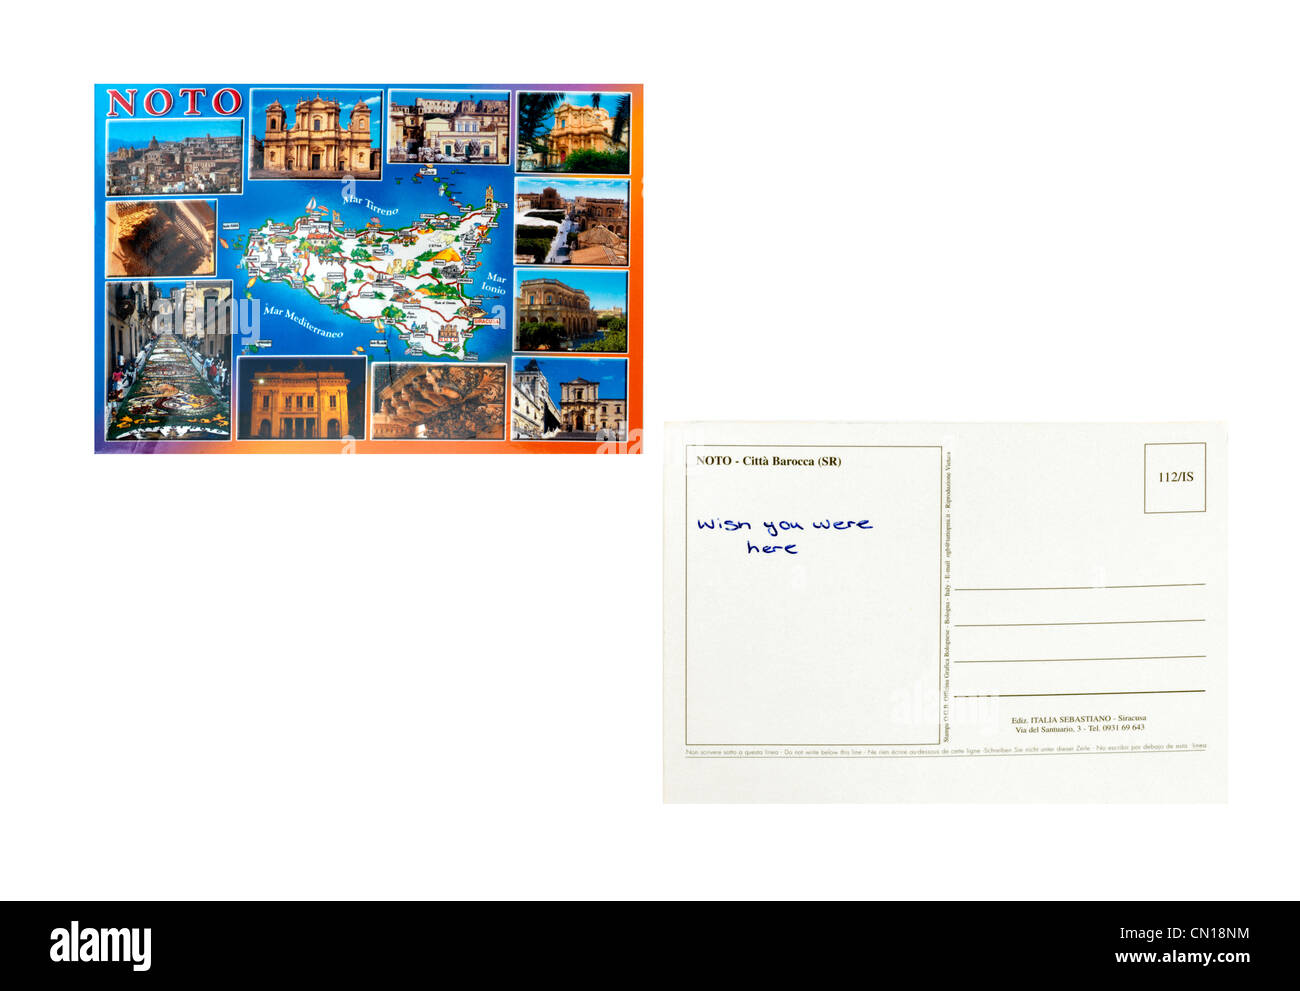 A Postcard From Noto Sicily Front And Back With Wish You Were Here Written On It